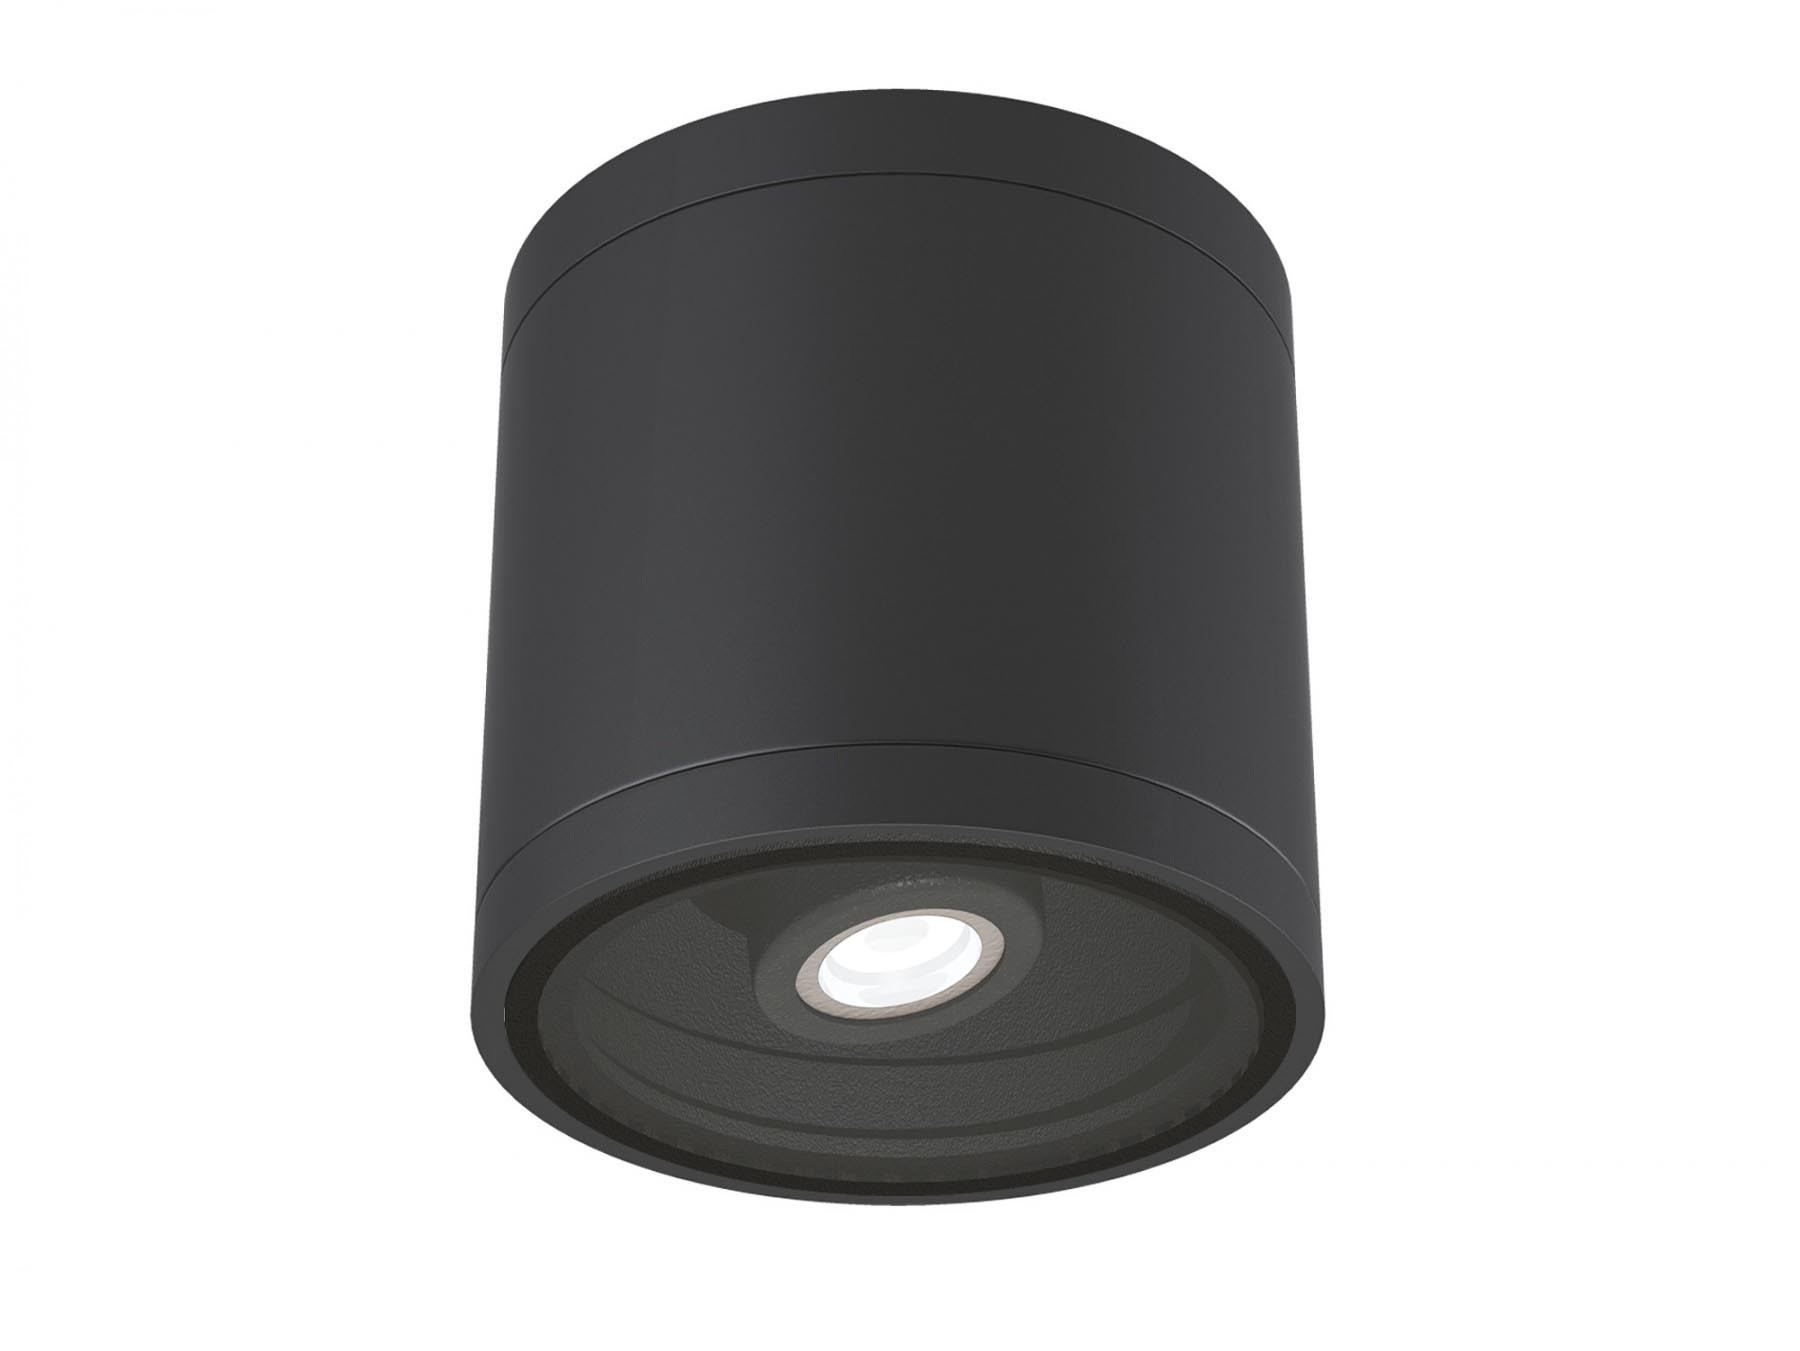 "6"" Round Adjustable Ceiling Downlight (IP65) - 700lm"